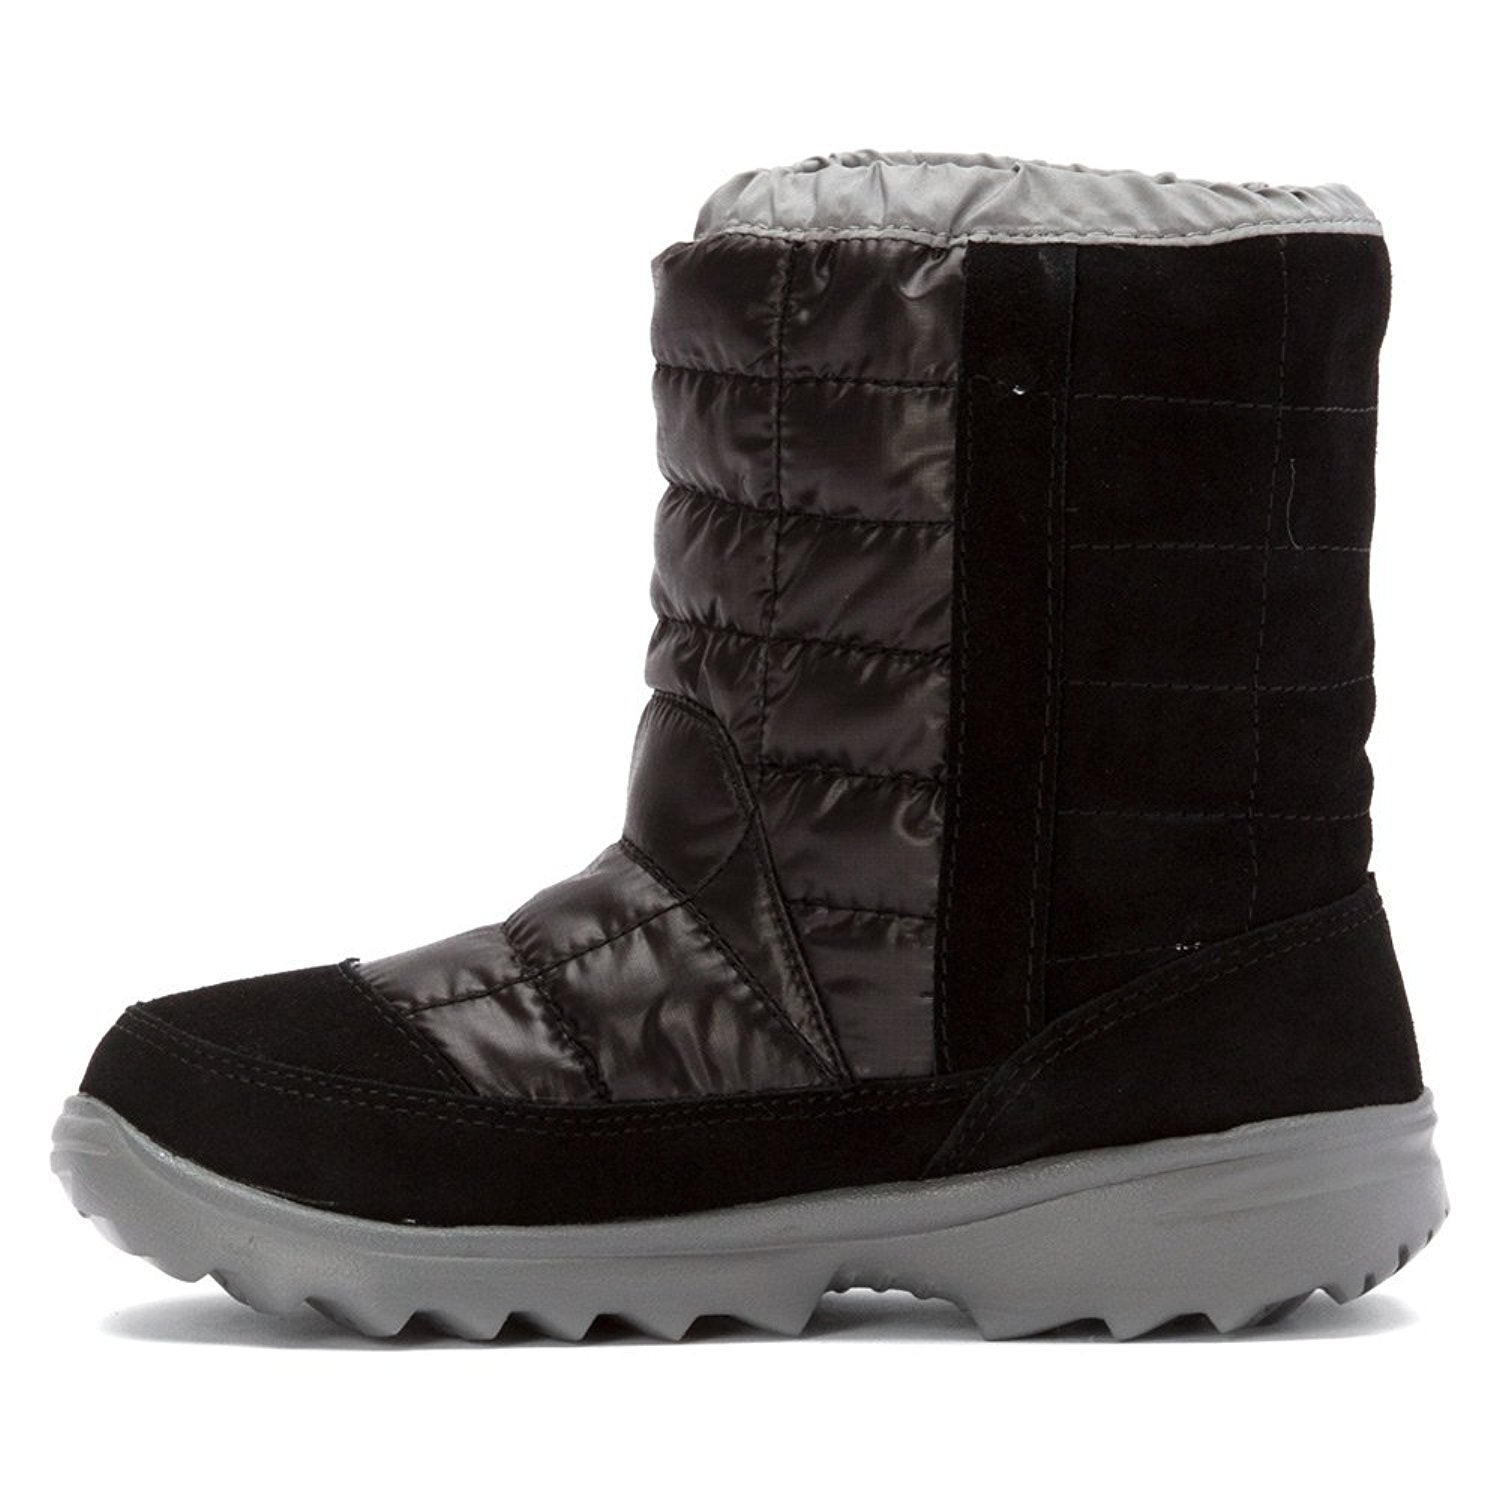 d4bb874d8 The North Face Winter Camp Waterproof Snow Boots - 2 m us little kid